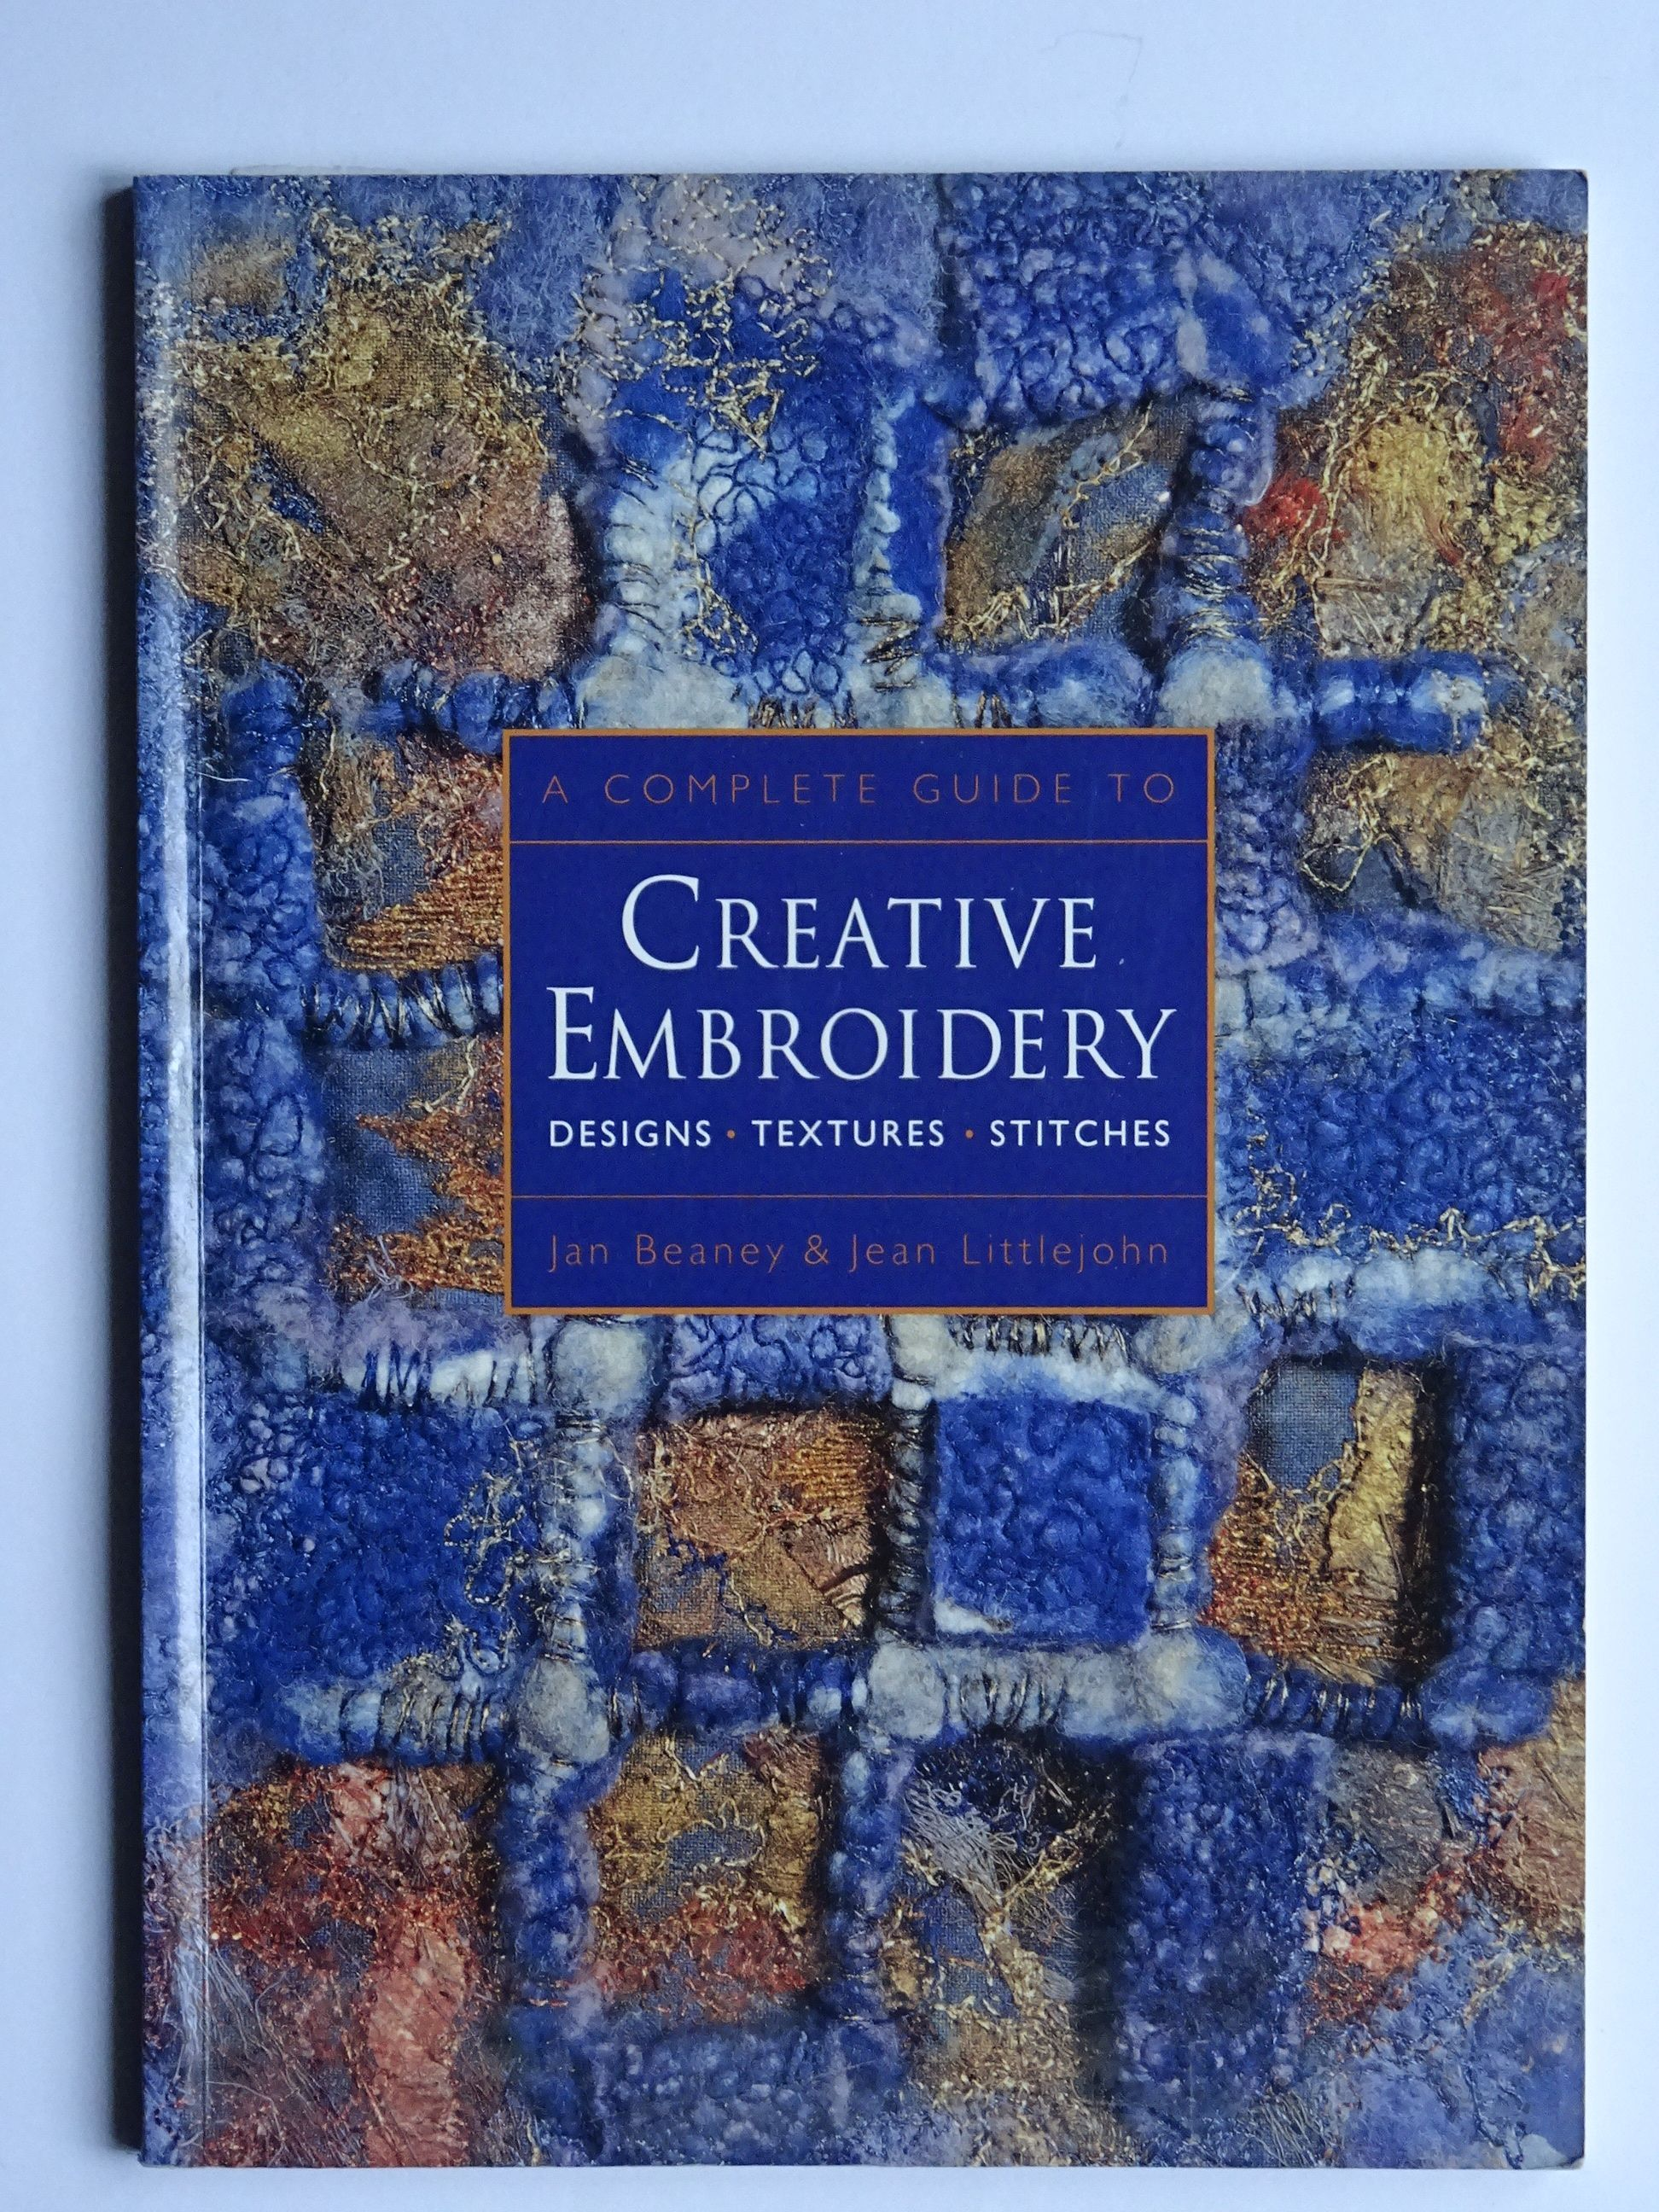 Beaney, Jan & Littlejohn, Jean - The Complete Guide to Creative Embroidery